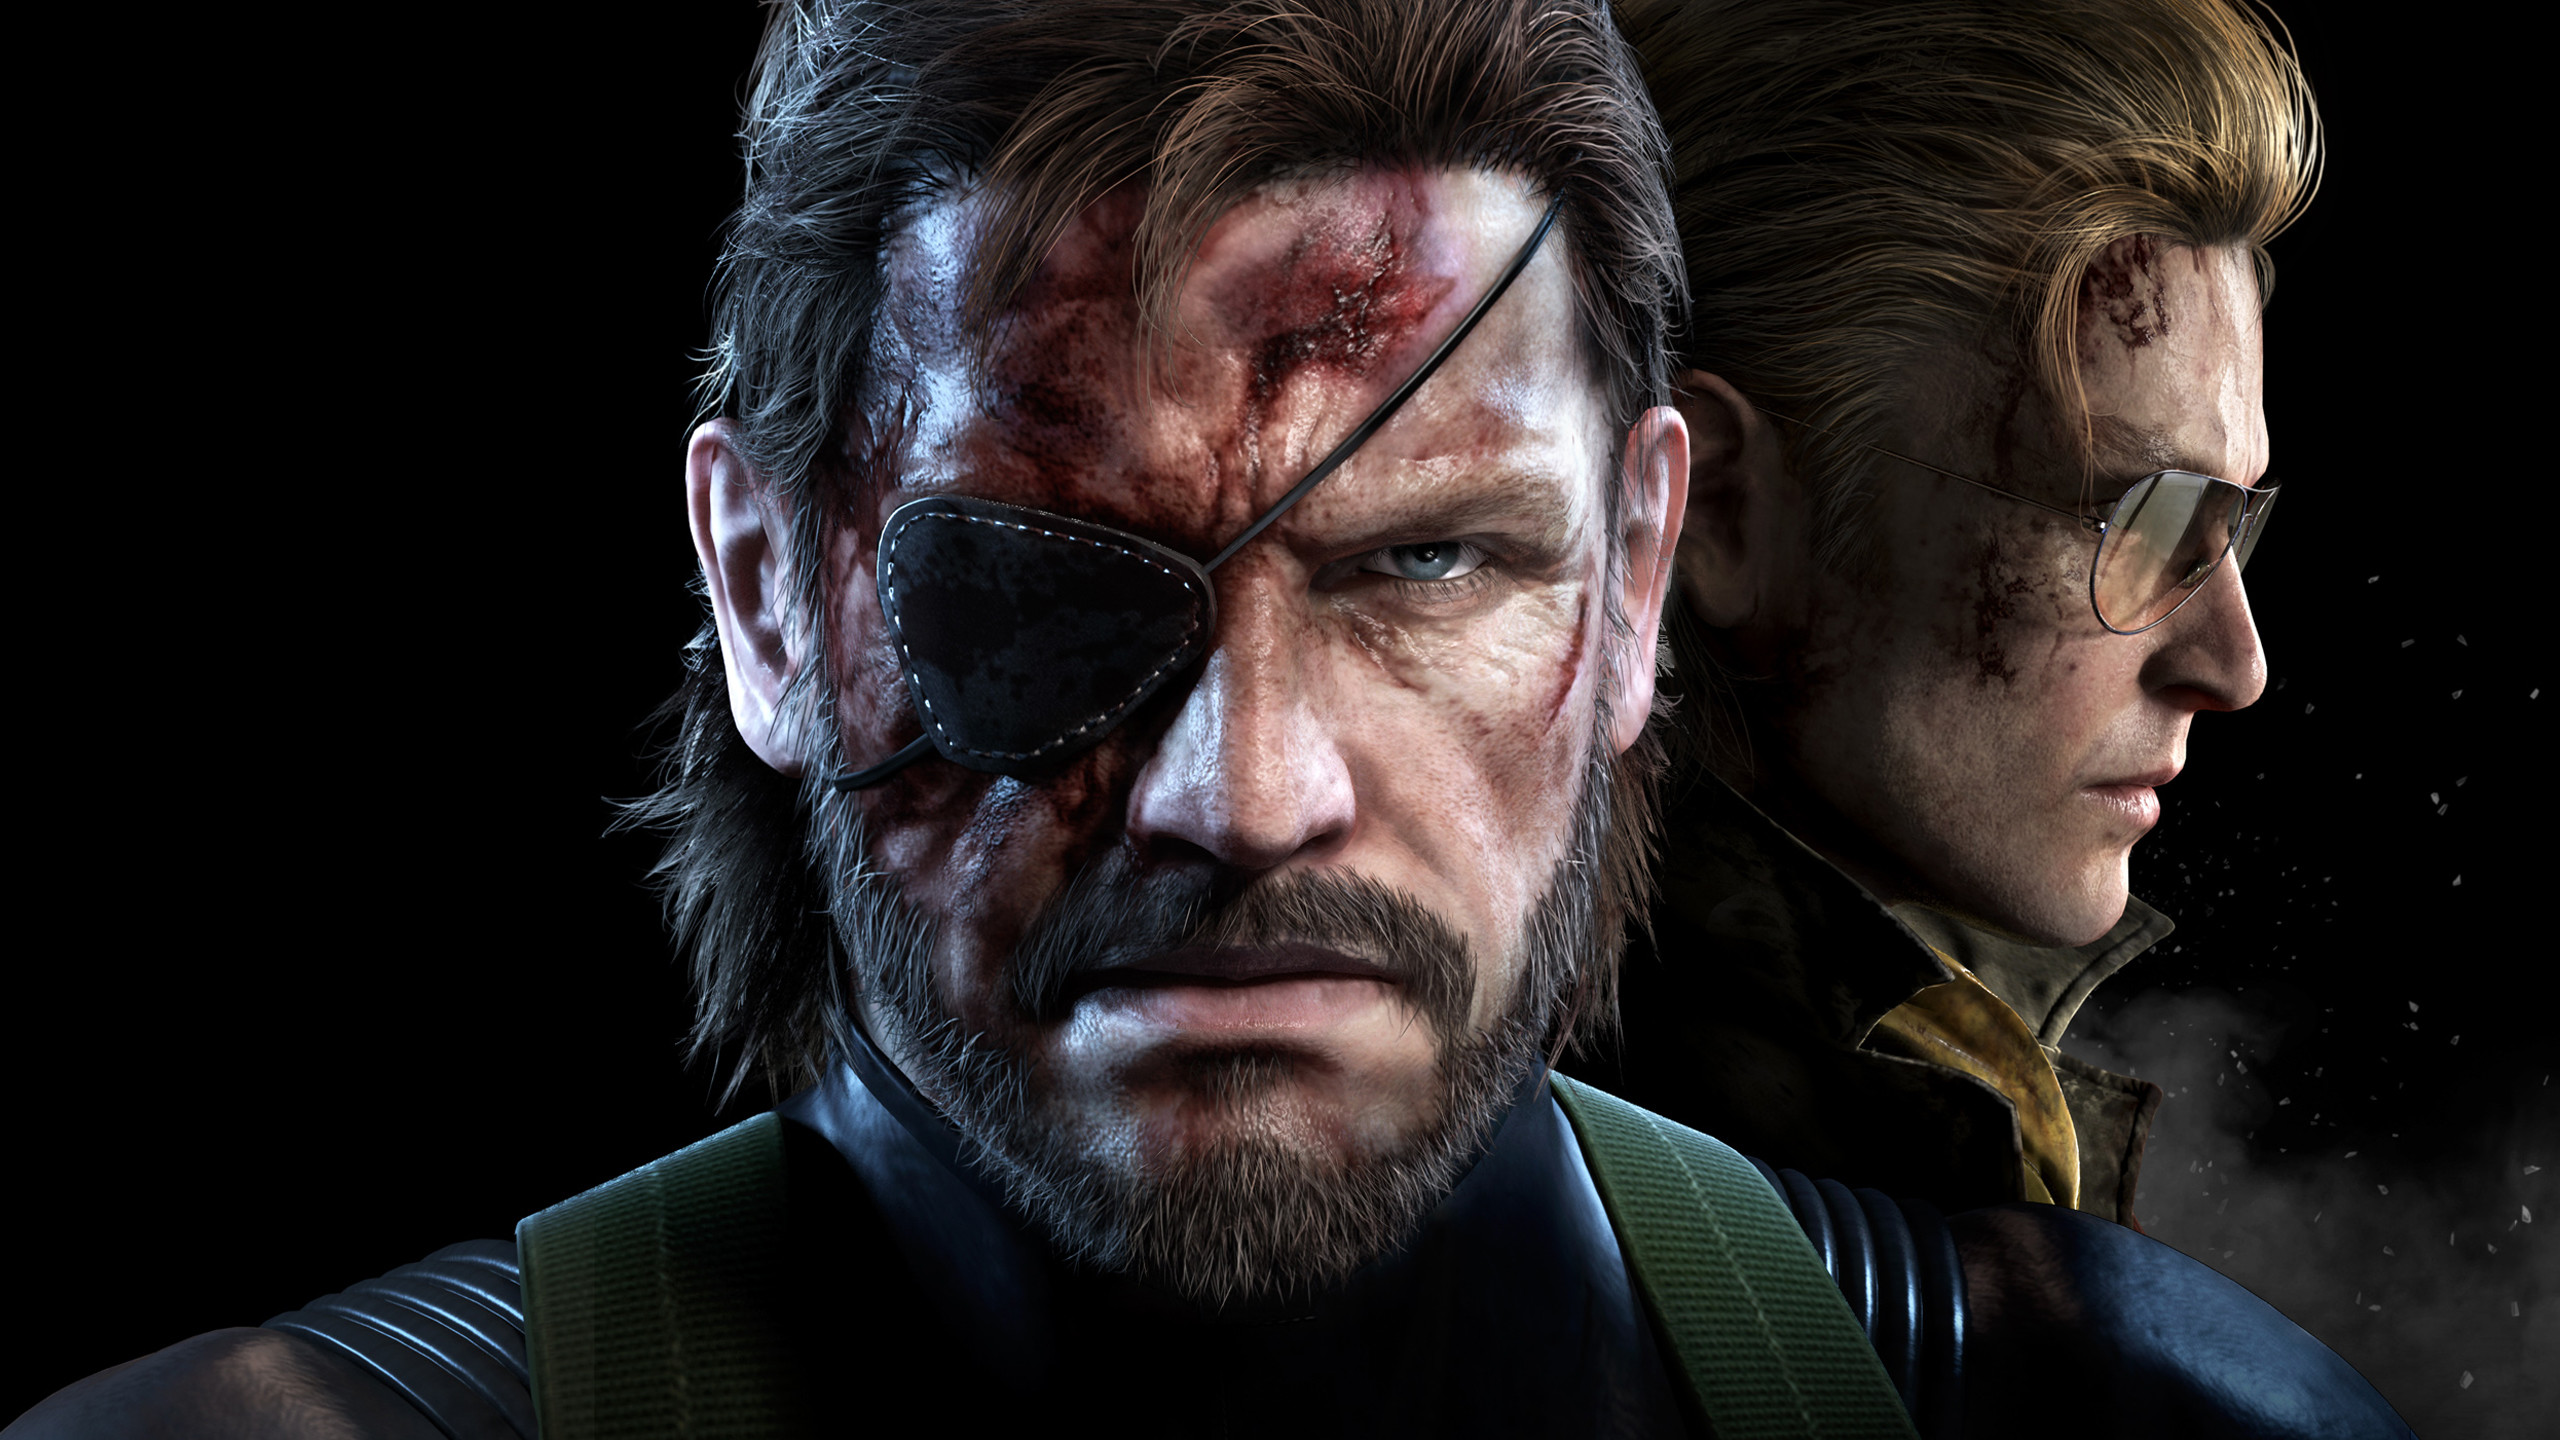 Metal Gear Solid V: The Phantom Pain Solid Snake · HD Wallpaper |  Background ID:665805